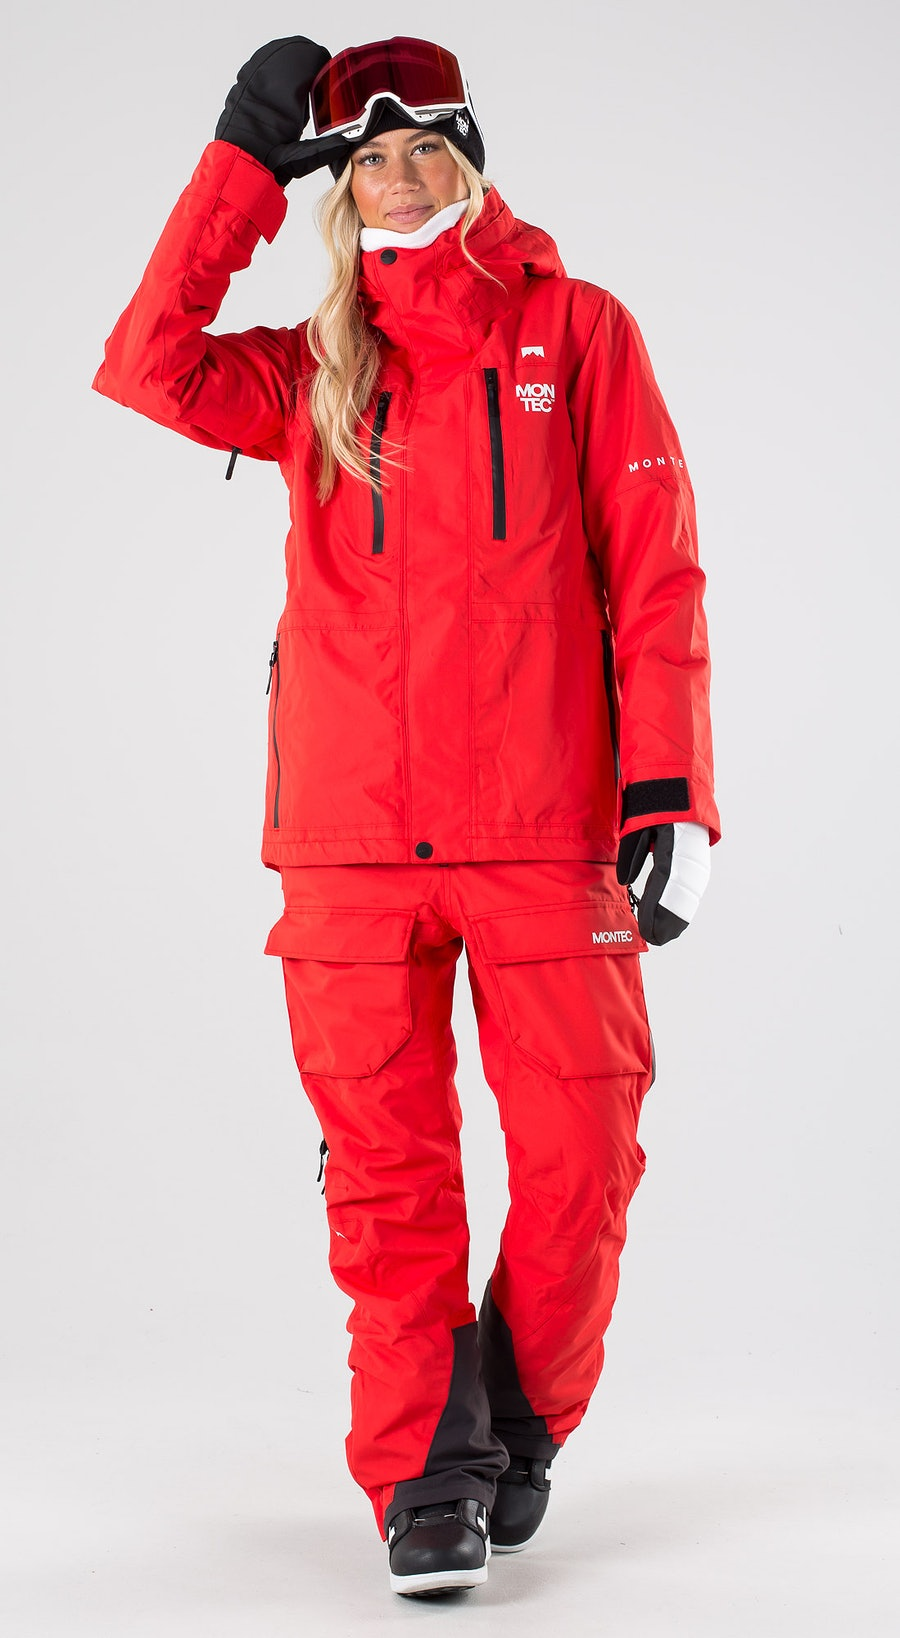 Montec Fawk W Red Snowboardkleidung Multi